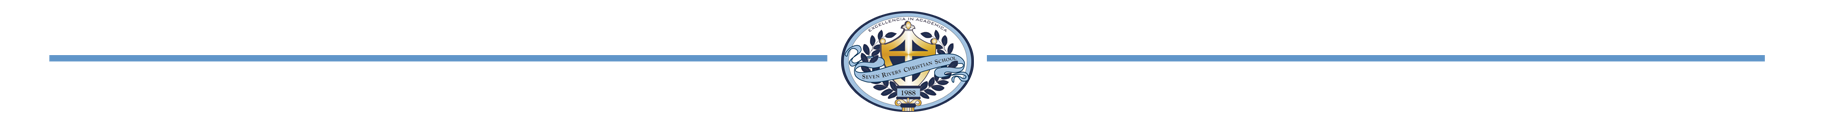 Seven Rivers Christian School - A college-prep community that seeks to bring the joy and peace of the gospel to a broken world